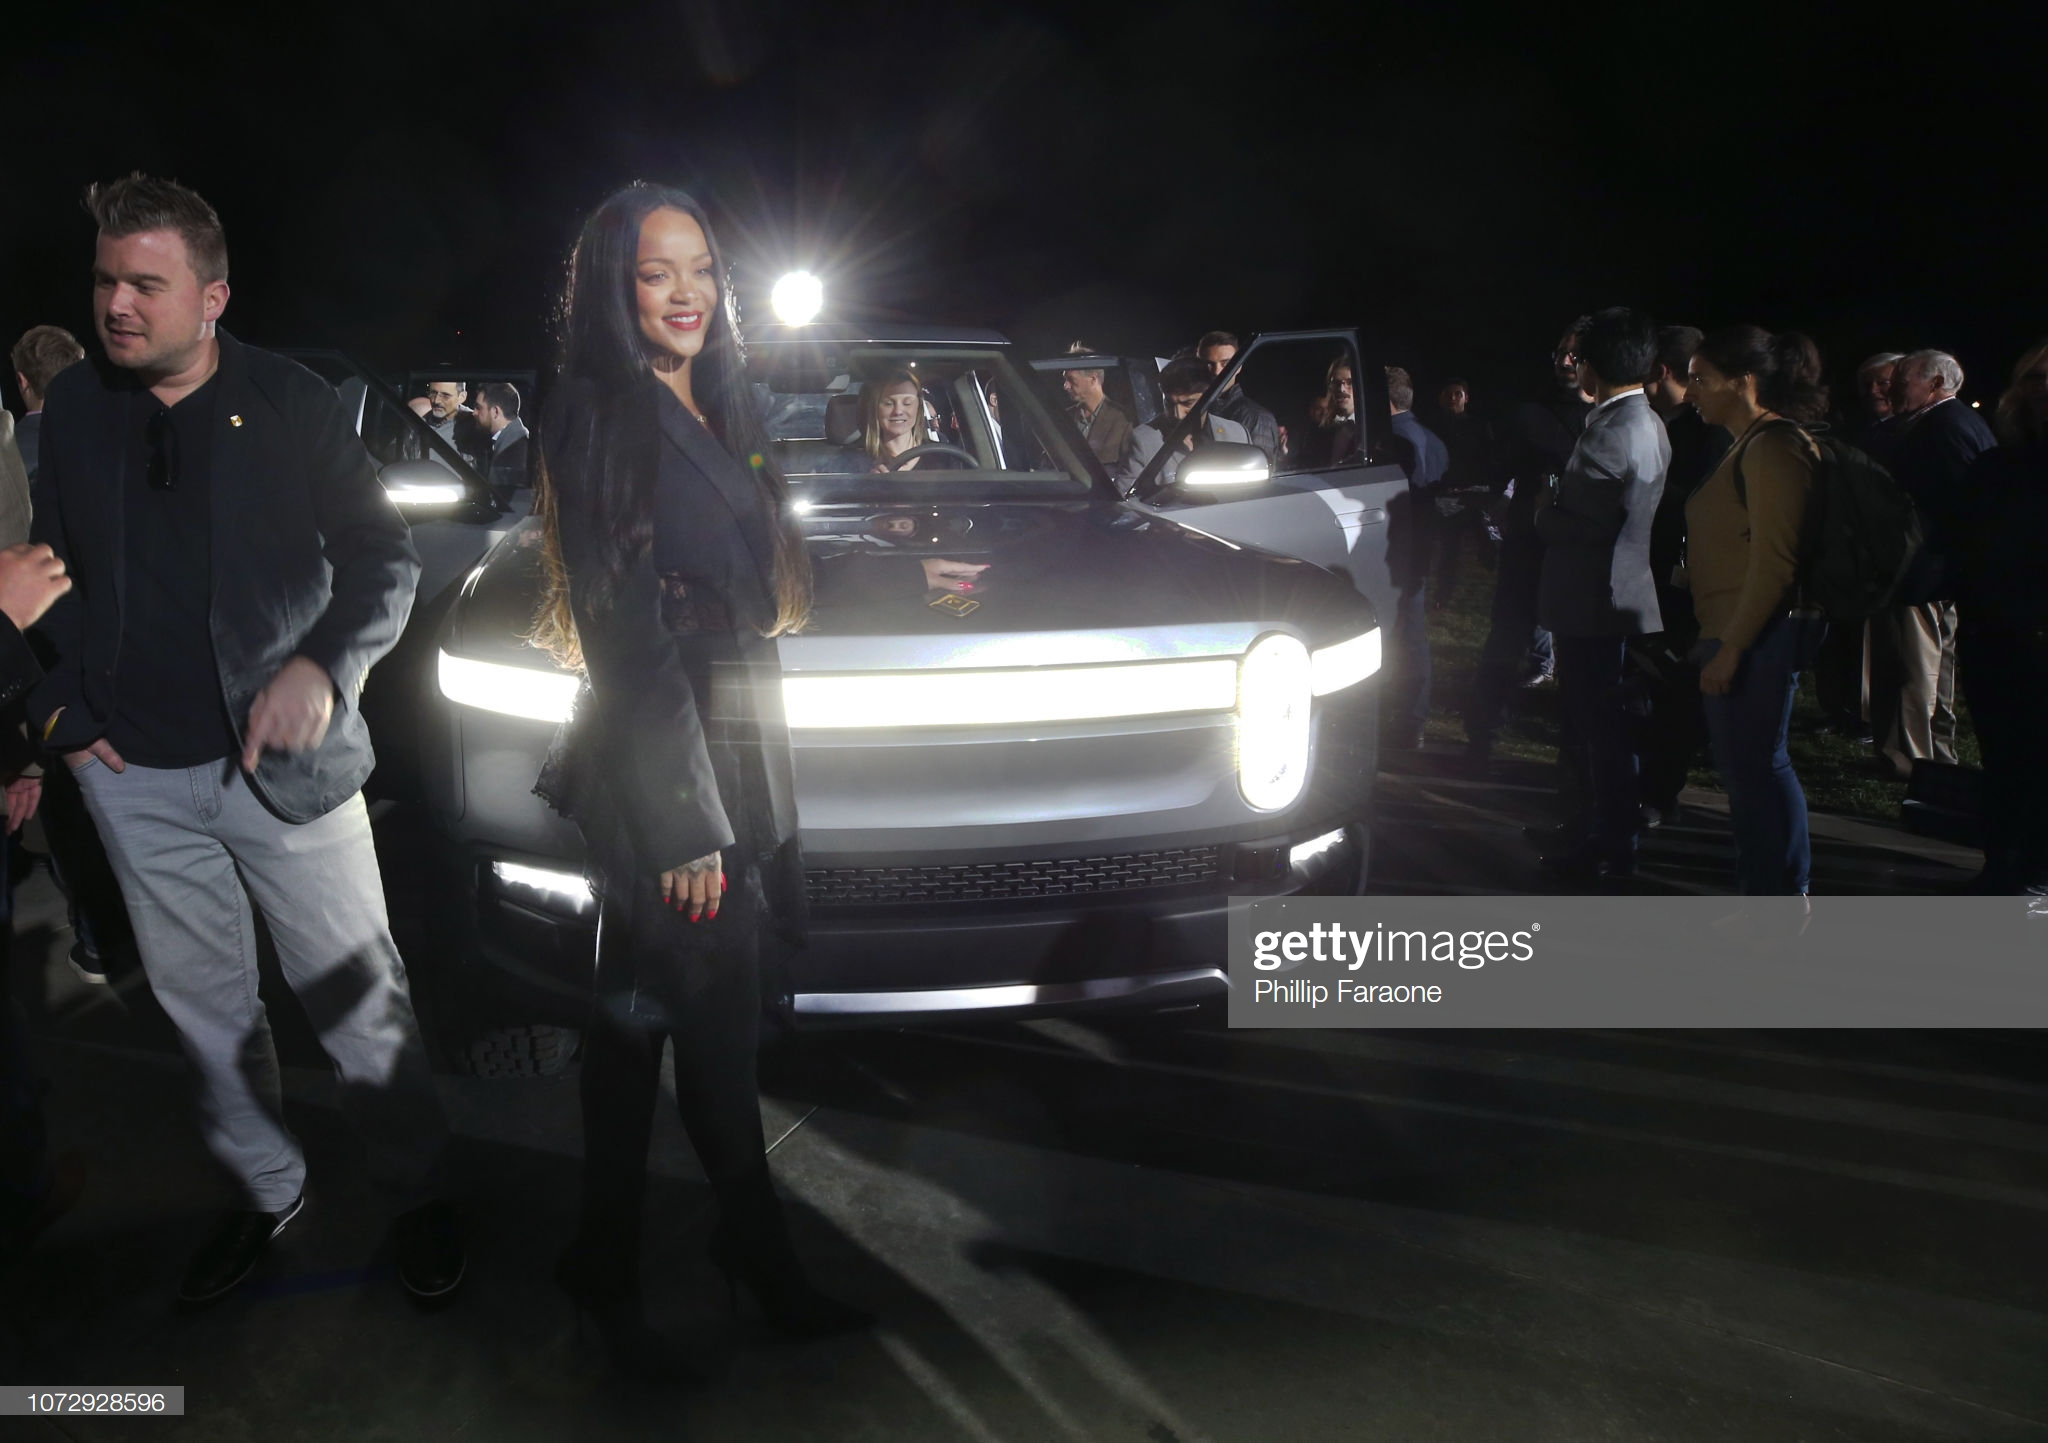 gettyimages-1072928596-2048x2048.jpg